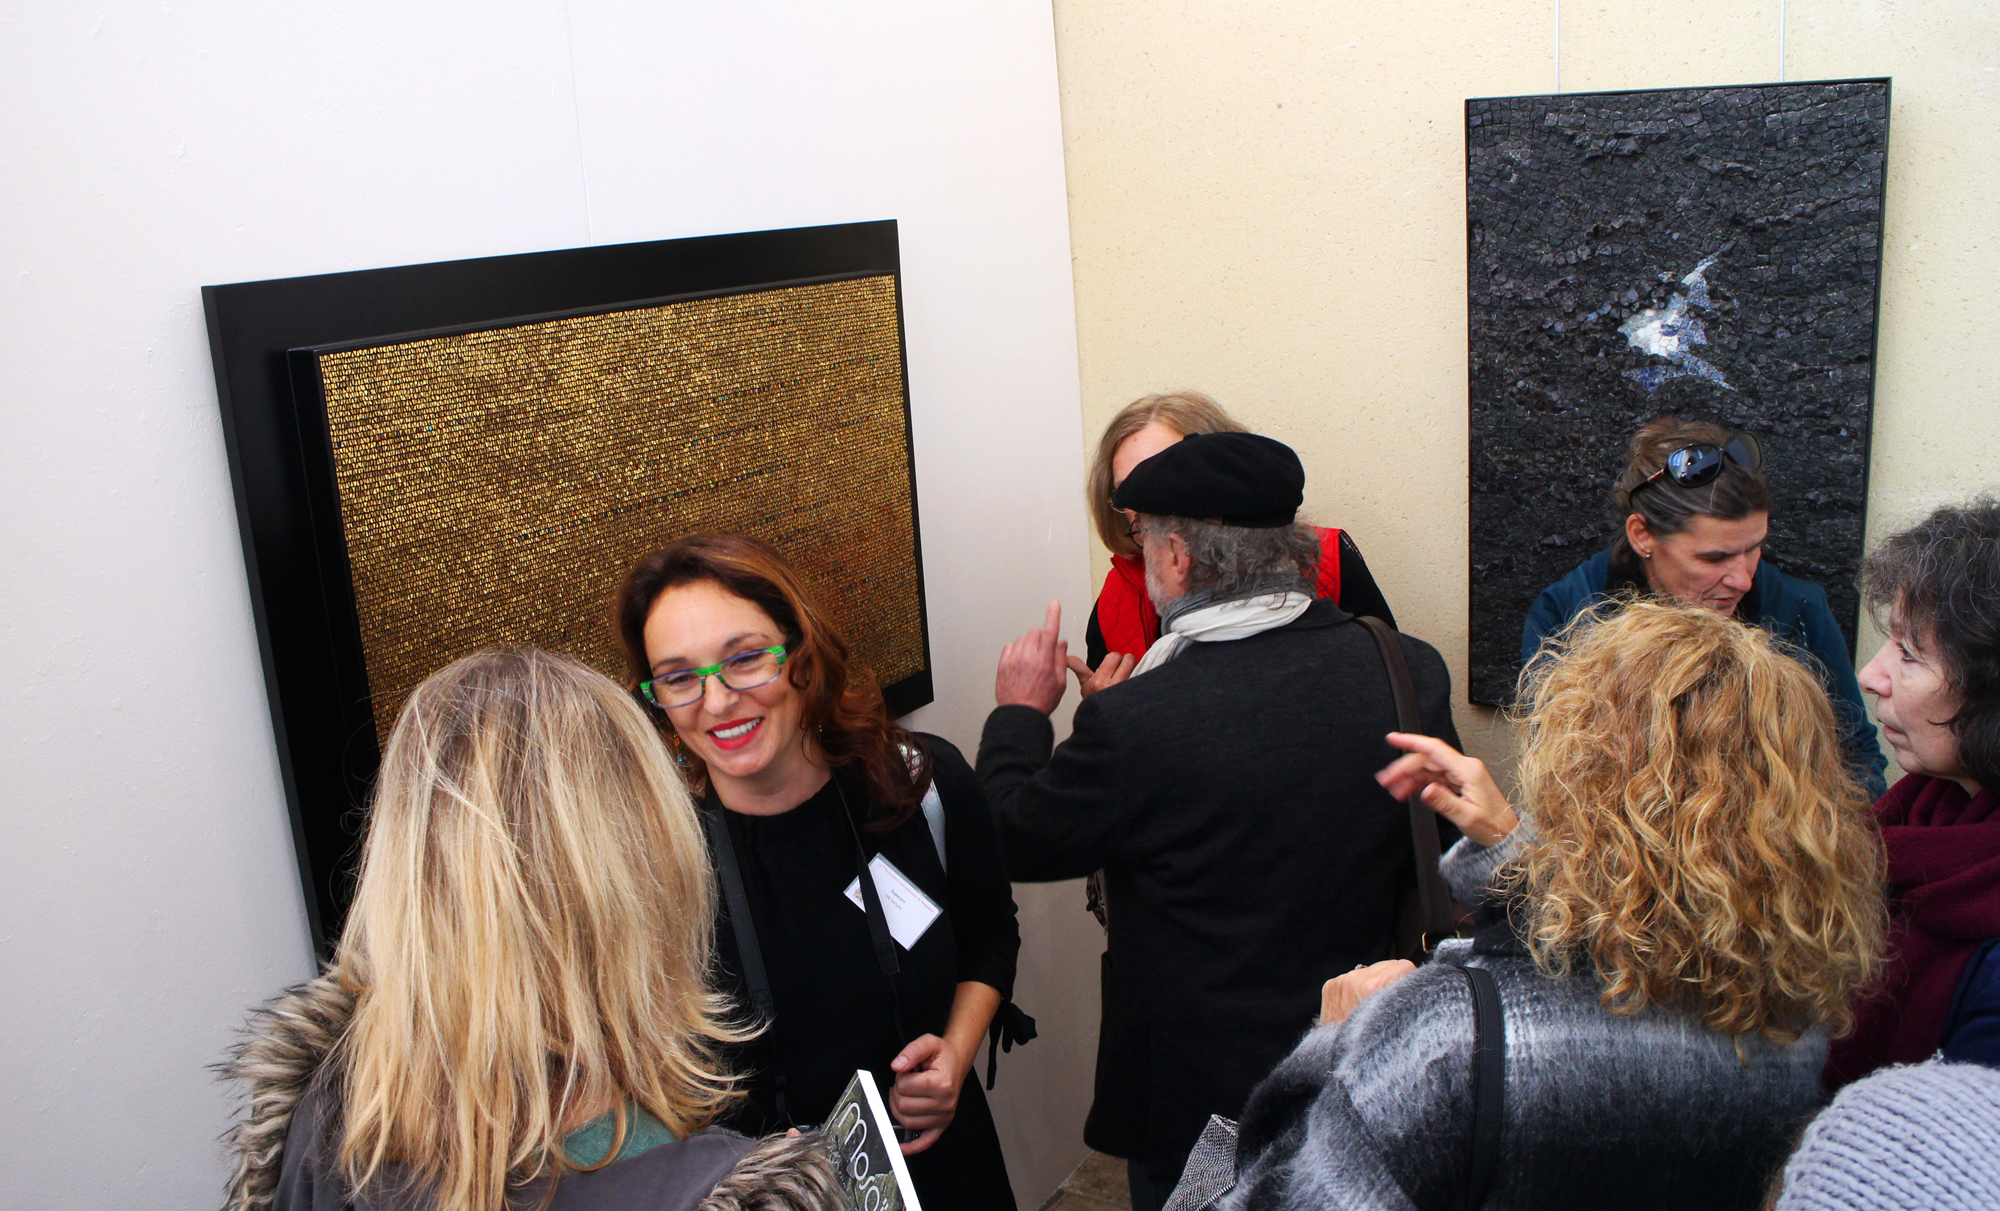 Chartres in action. Myself pictured with Isabelle de Sa Moreira and Gerard Brand.